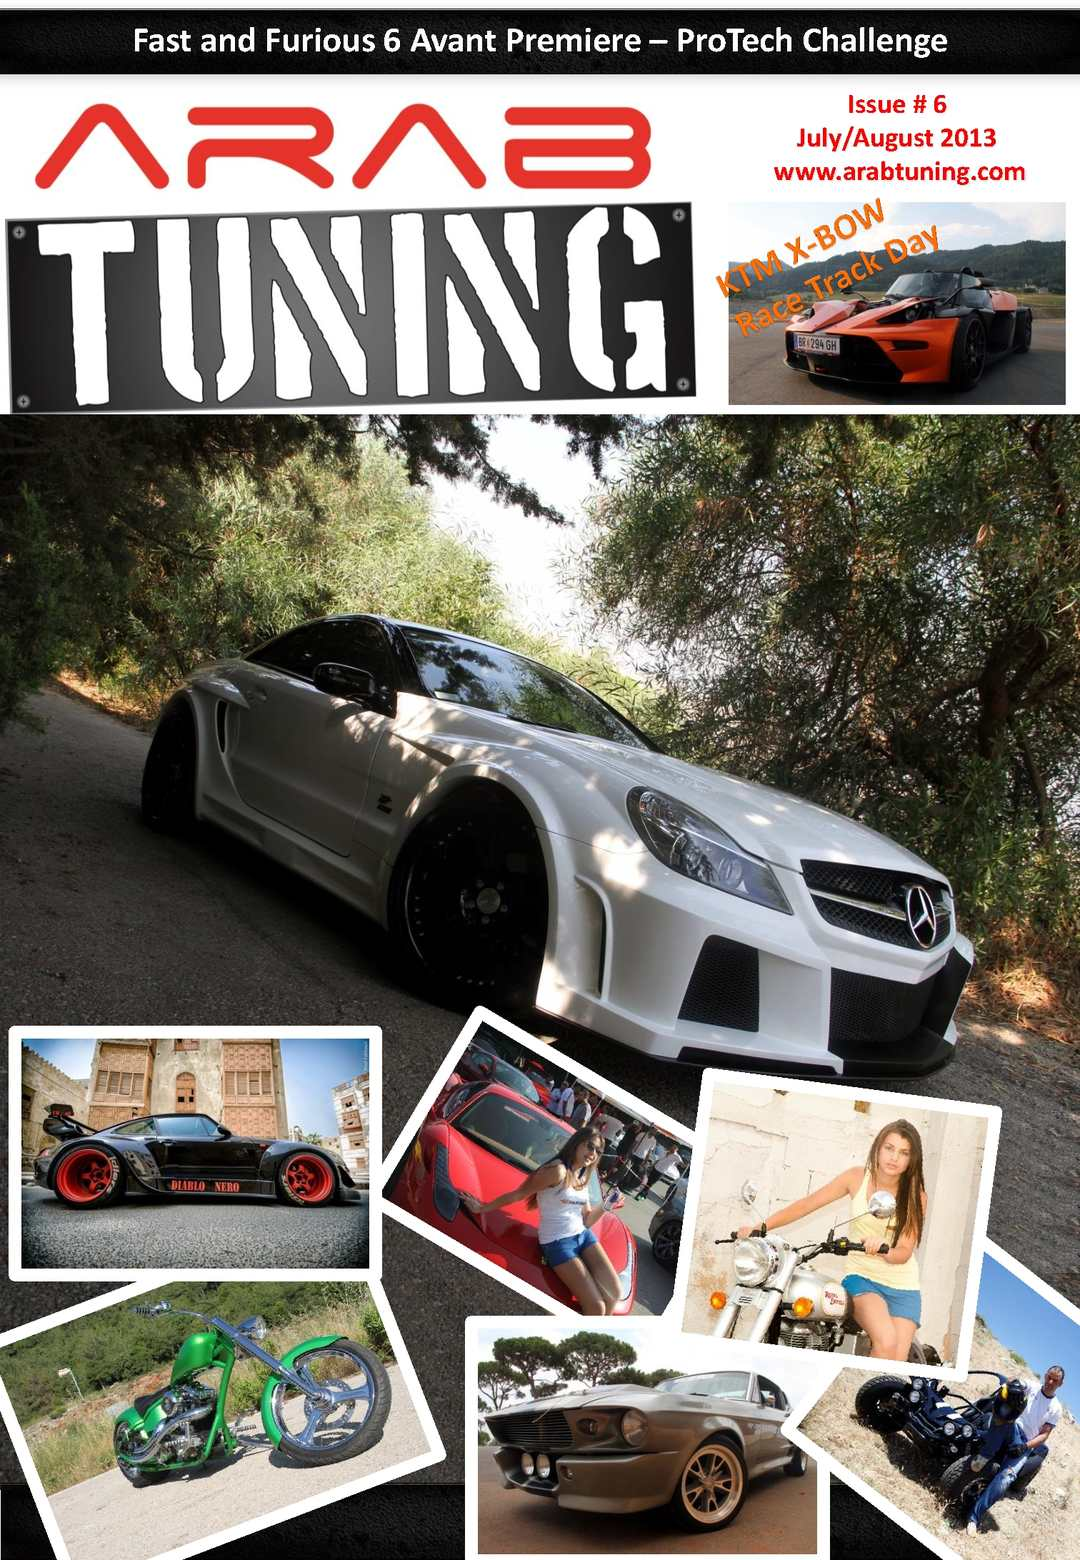 Calaméo - Arab Tuning issue # 6 July/August 2013